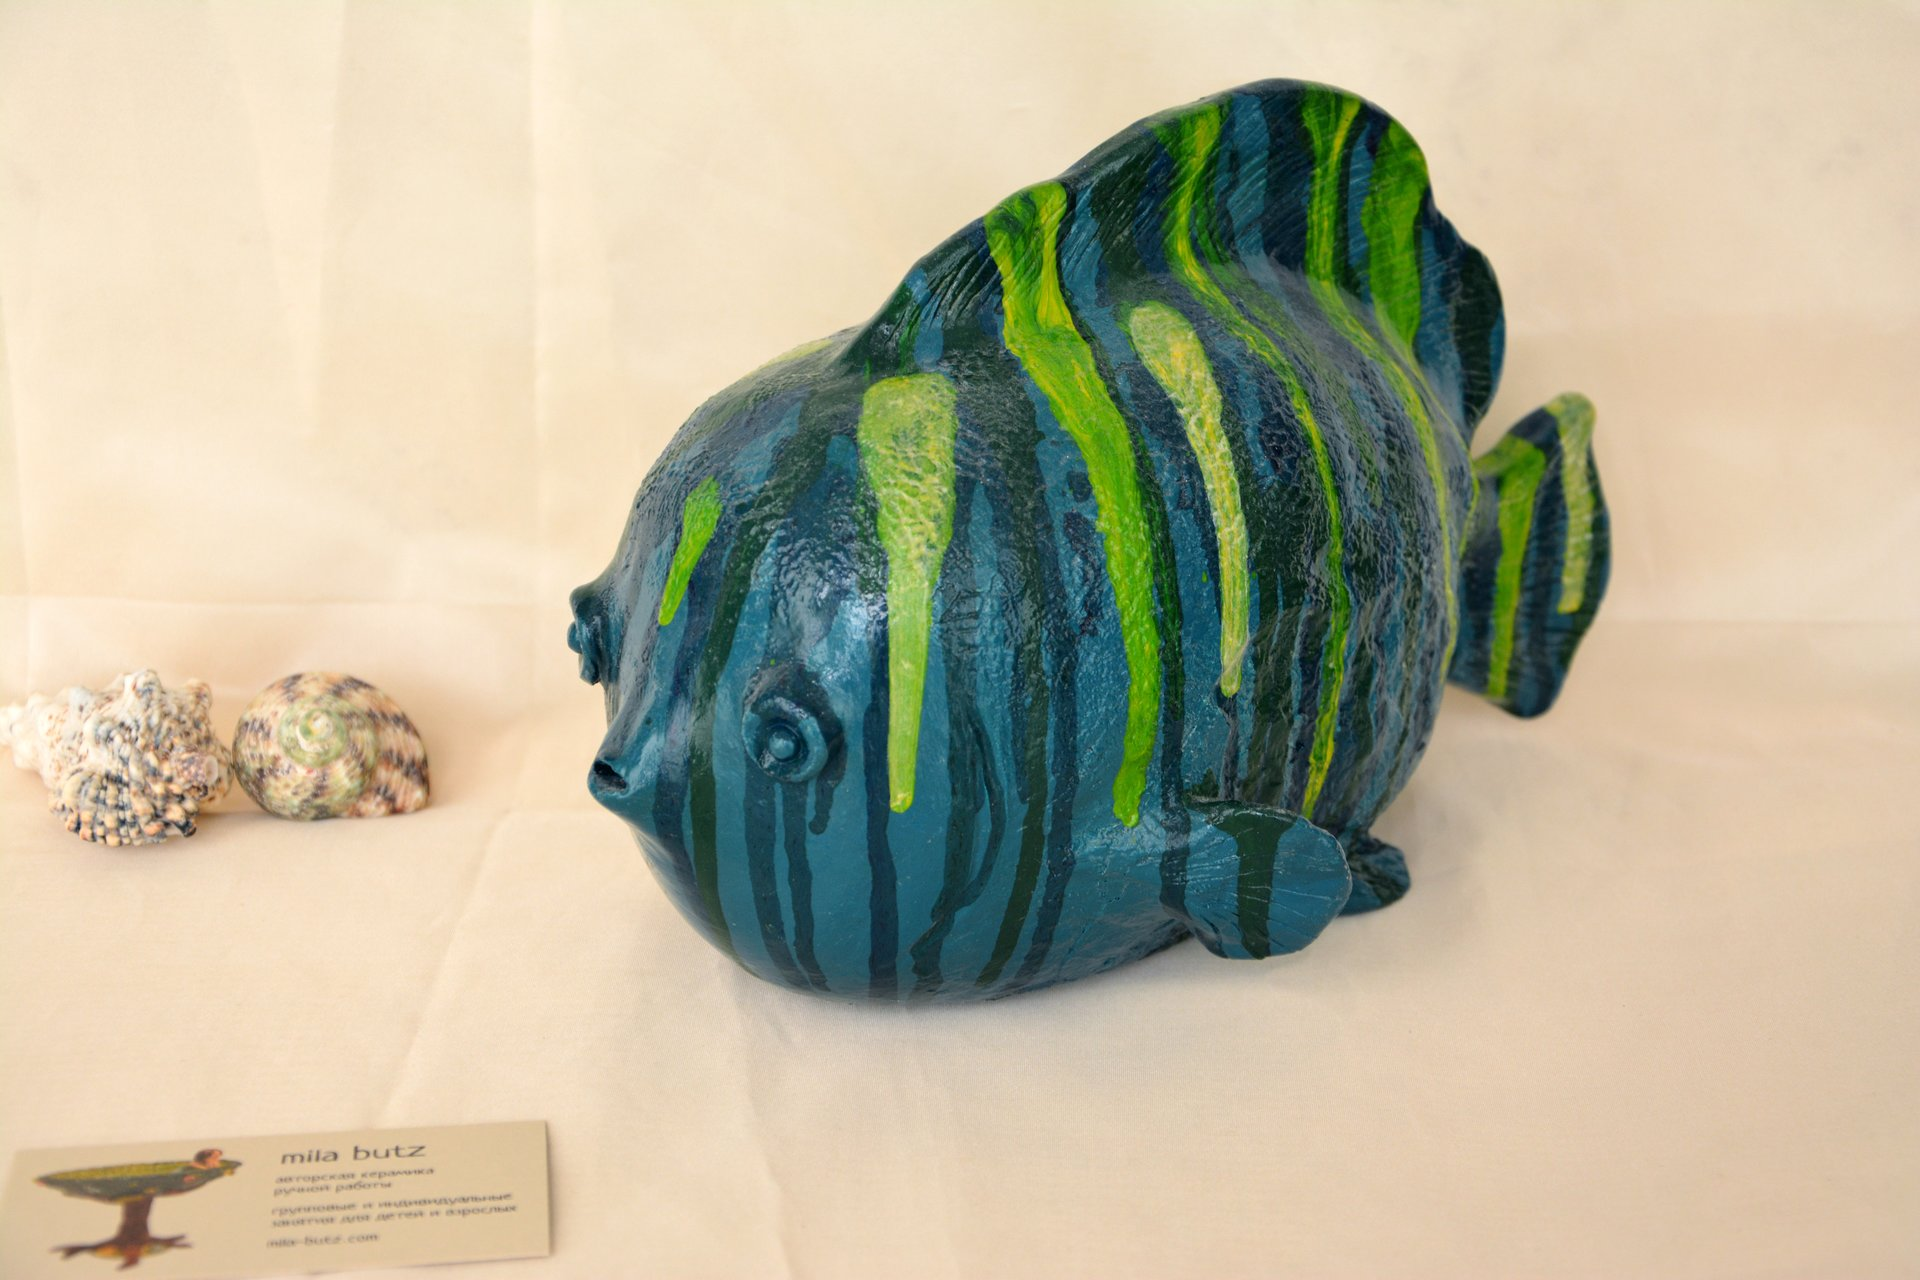 Ceramic figurine of a large fish, height - 17 cm, length - 26 cm, width - 16 cm., photo 1 of 2.